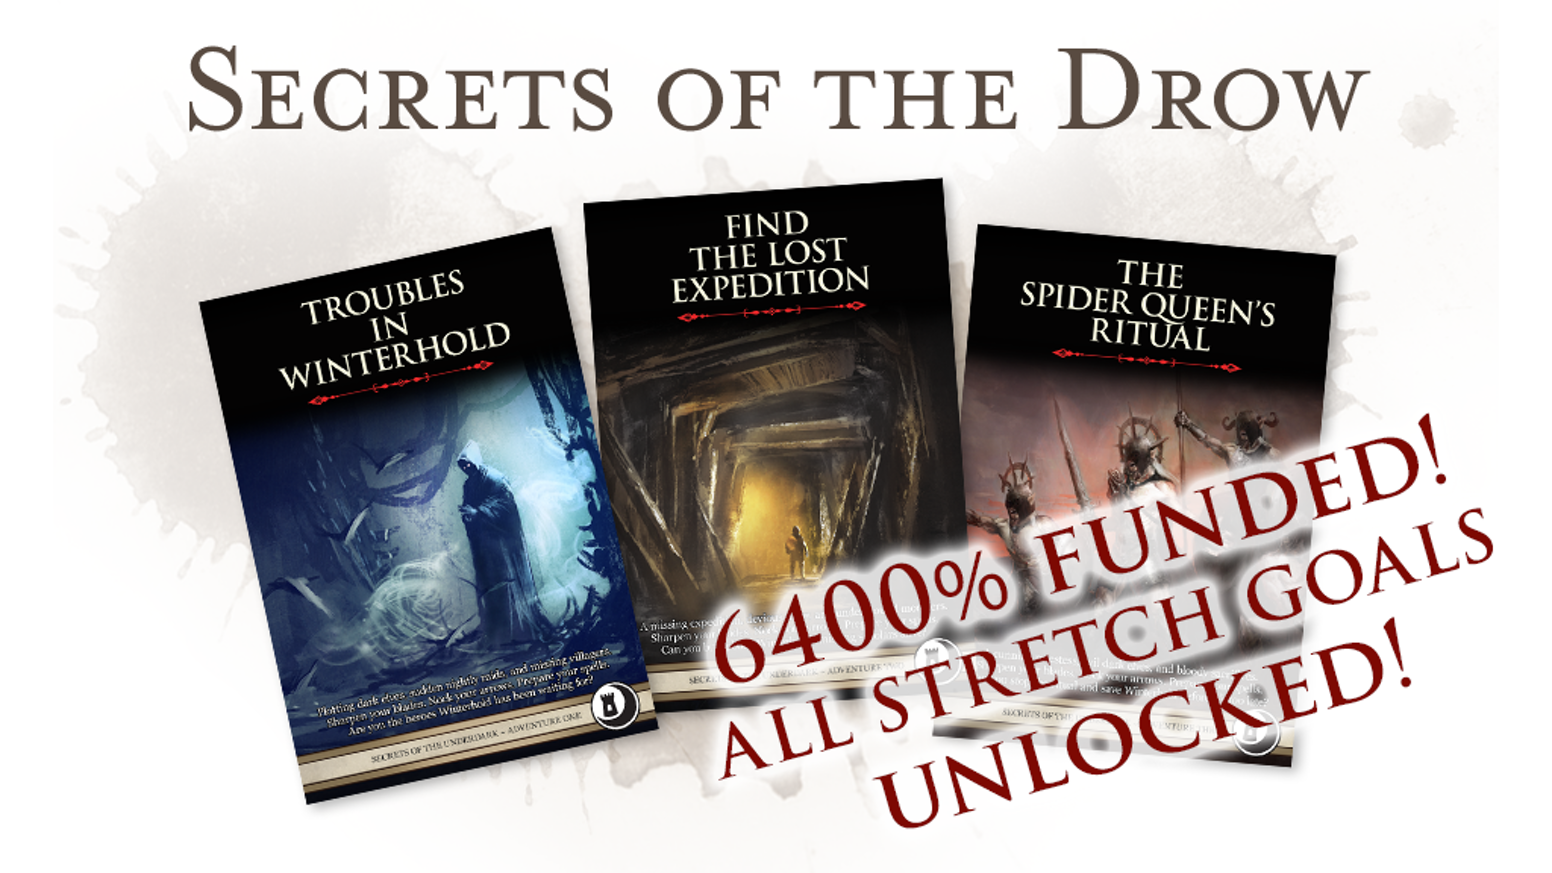 The Secrets of the Drow trilogy will be released 18 November, 2019. Sign up to our newsletter to find out about new releases and Kickstarter campaigns!